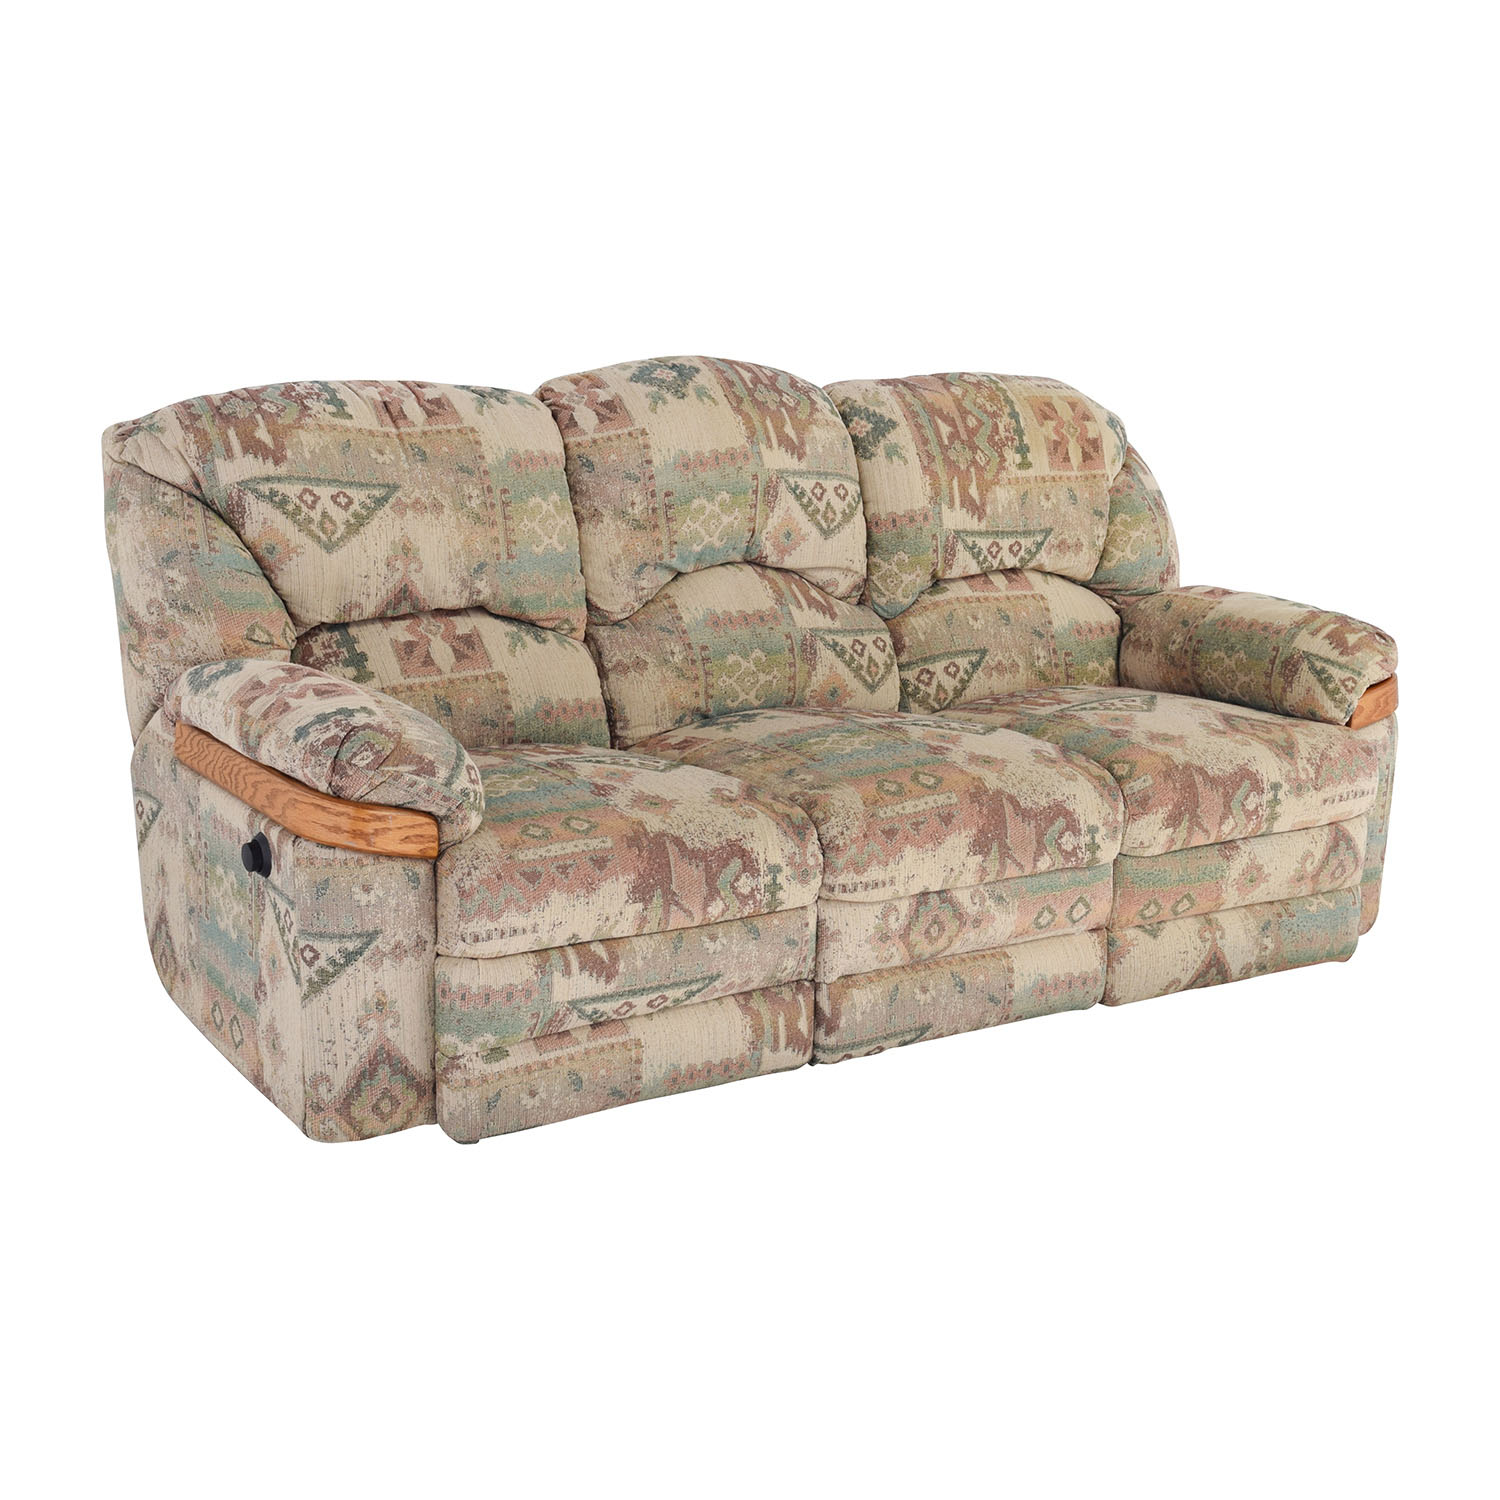 Buying A Second Hand Sofa 82 Off Patterned Fabric Recliner Sofa Sofas